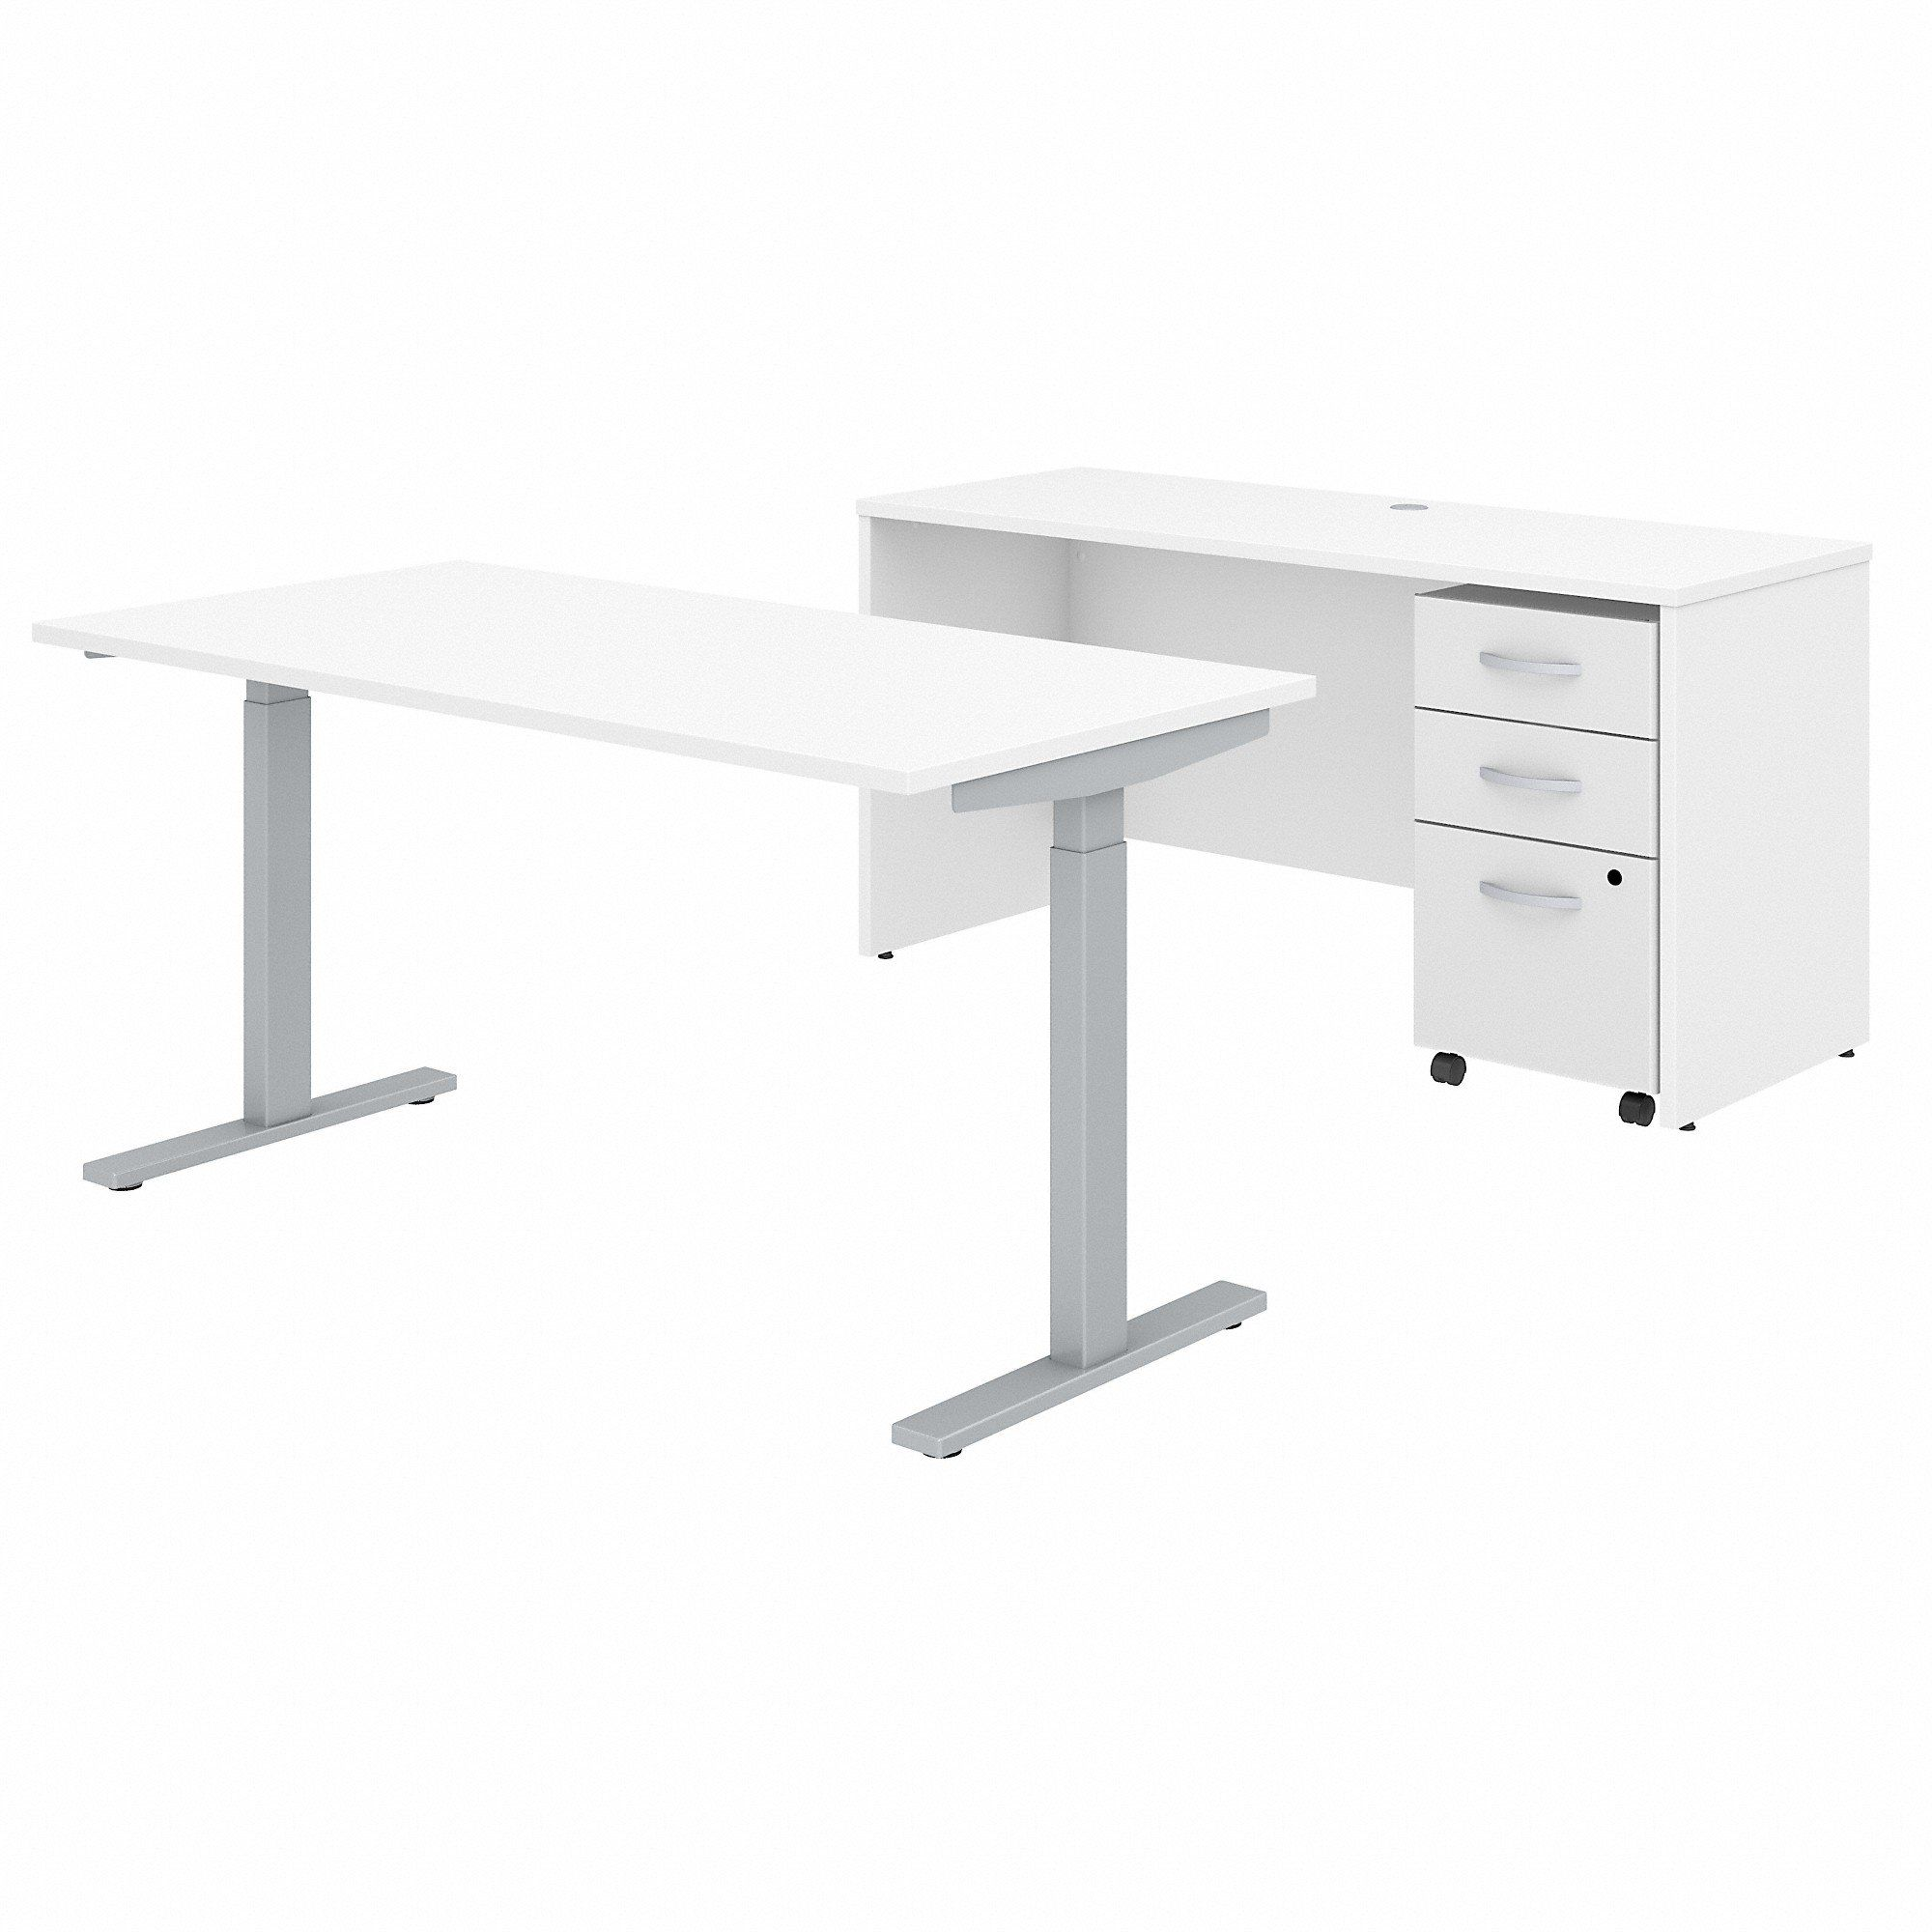 Bush Business Furniture Studio C 60W x 30D Height Adjustable Standing Desk, Credenza and Mobile File Cabinet in White